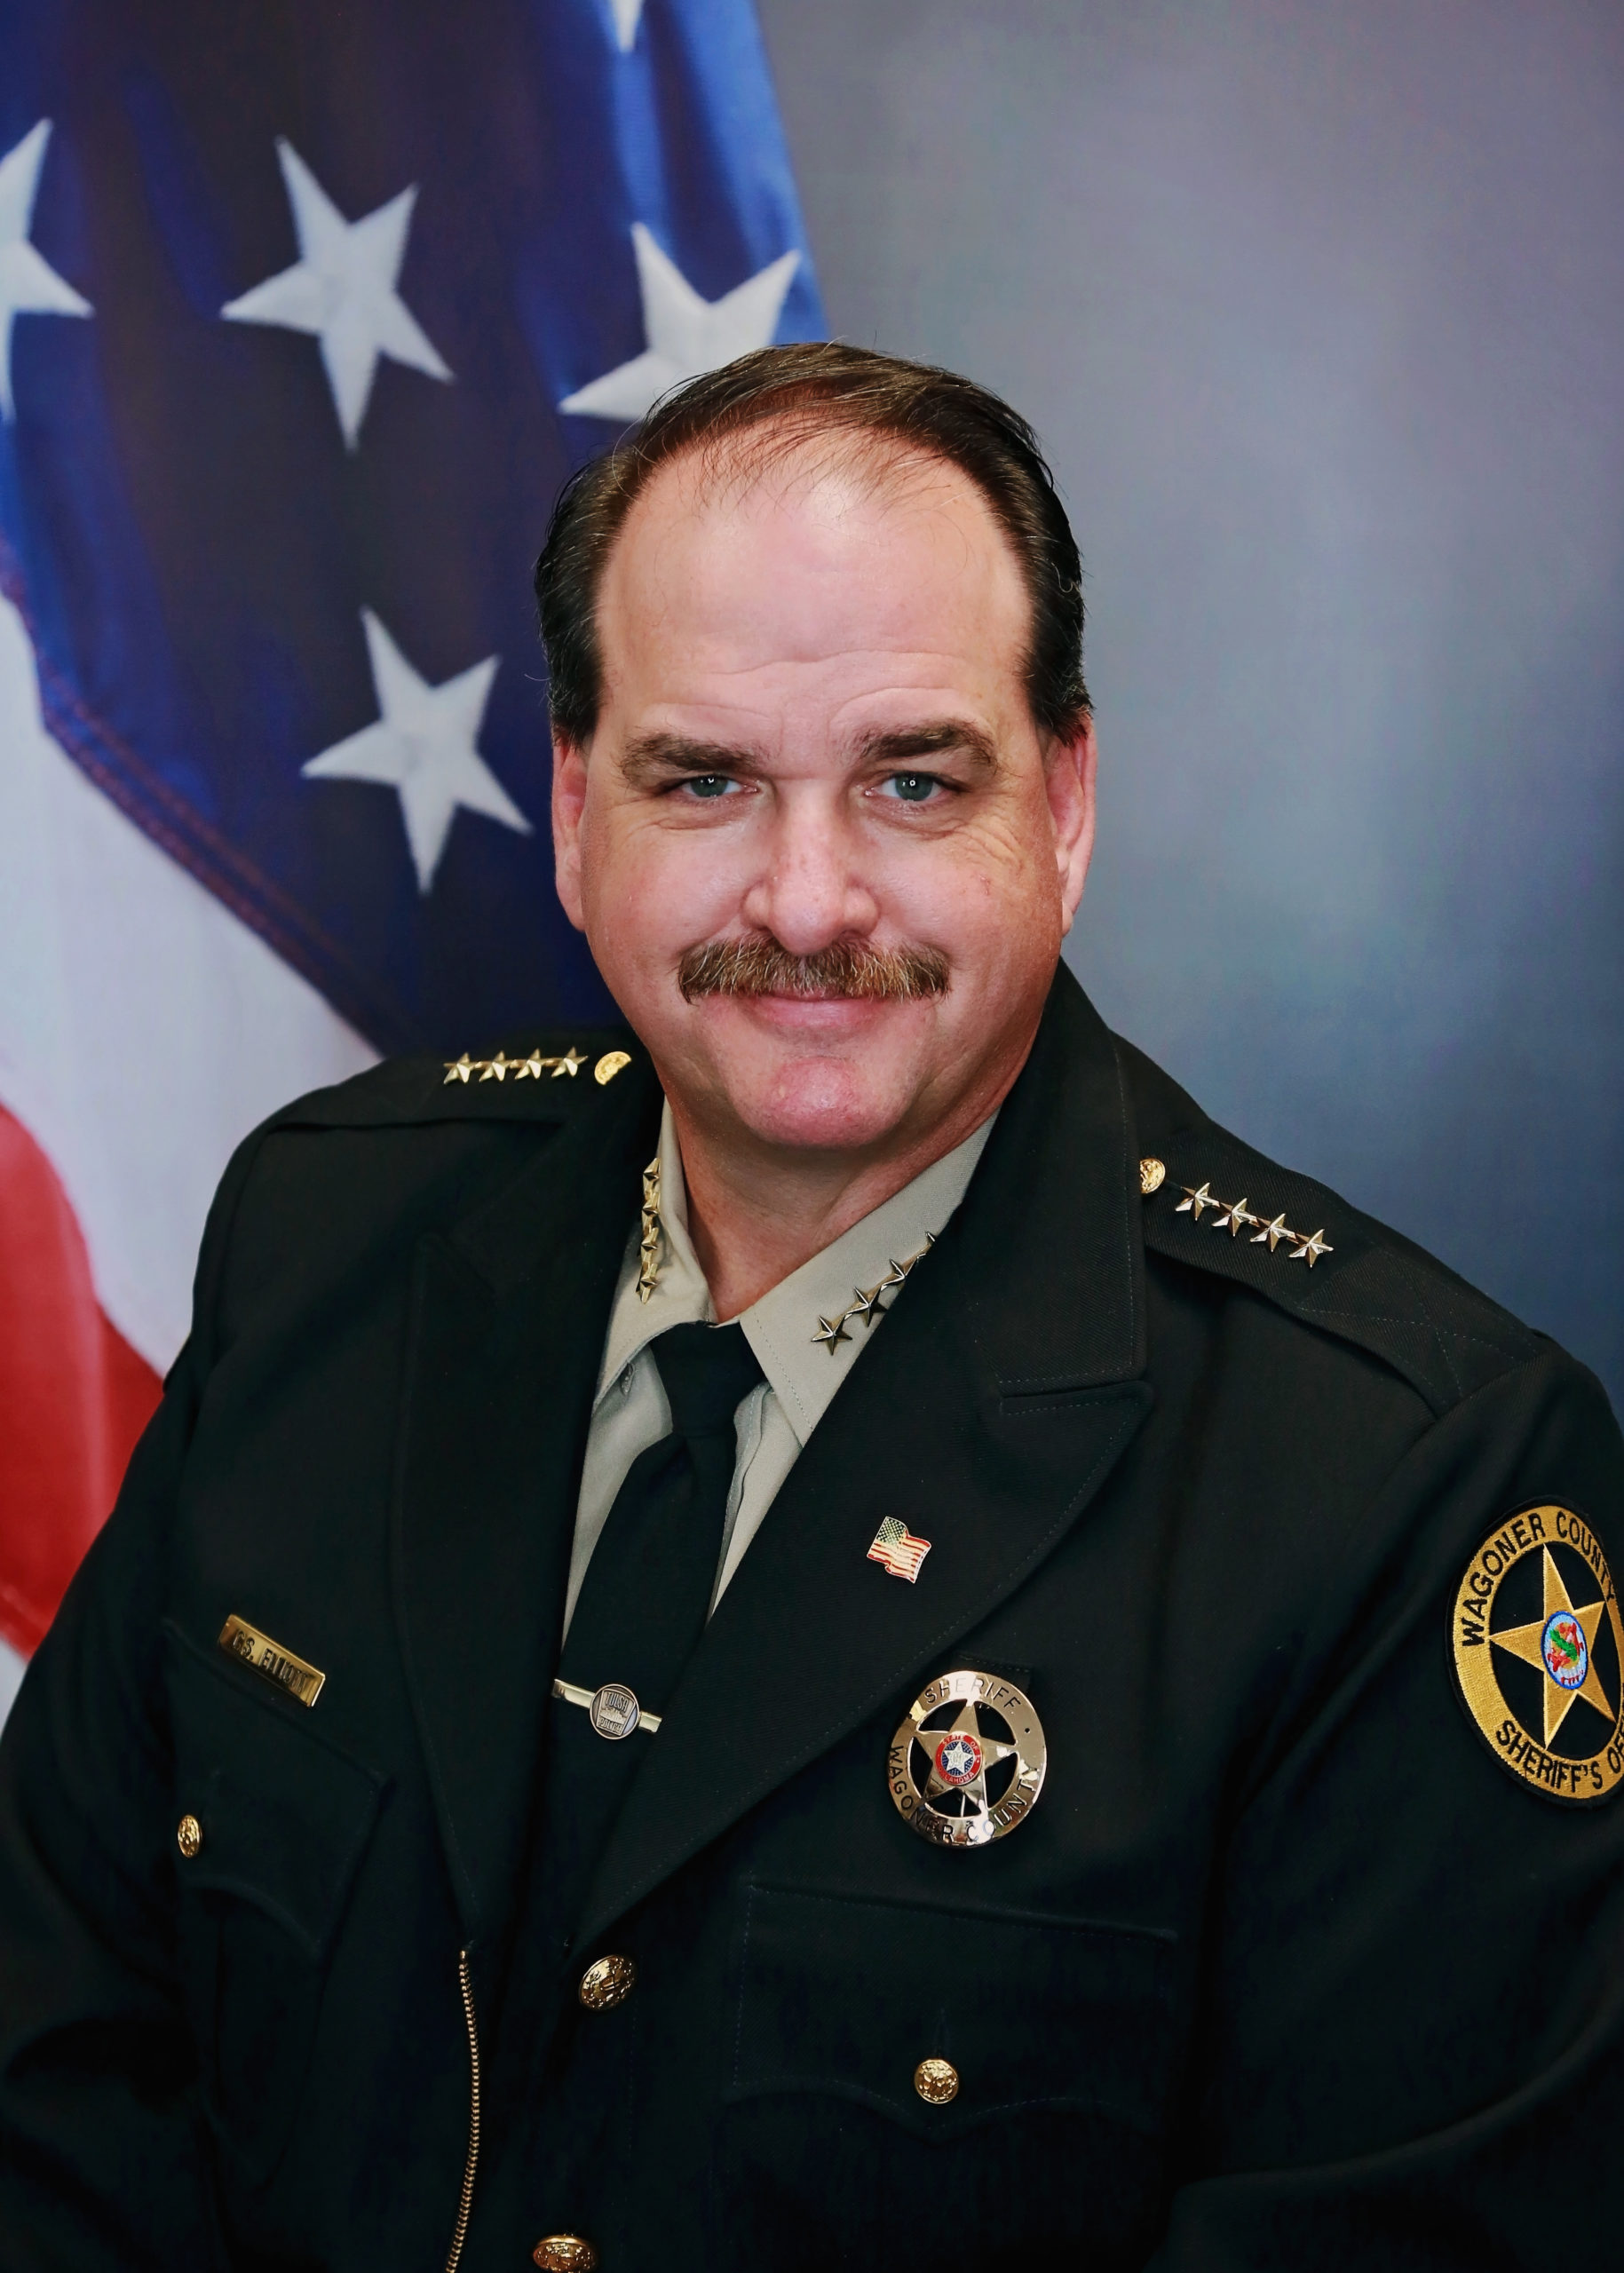 Wagoner County Sheriff Chris Elliott